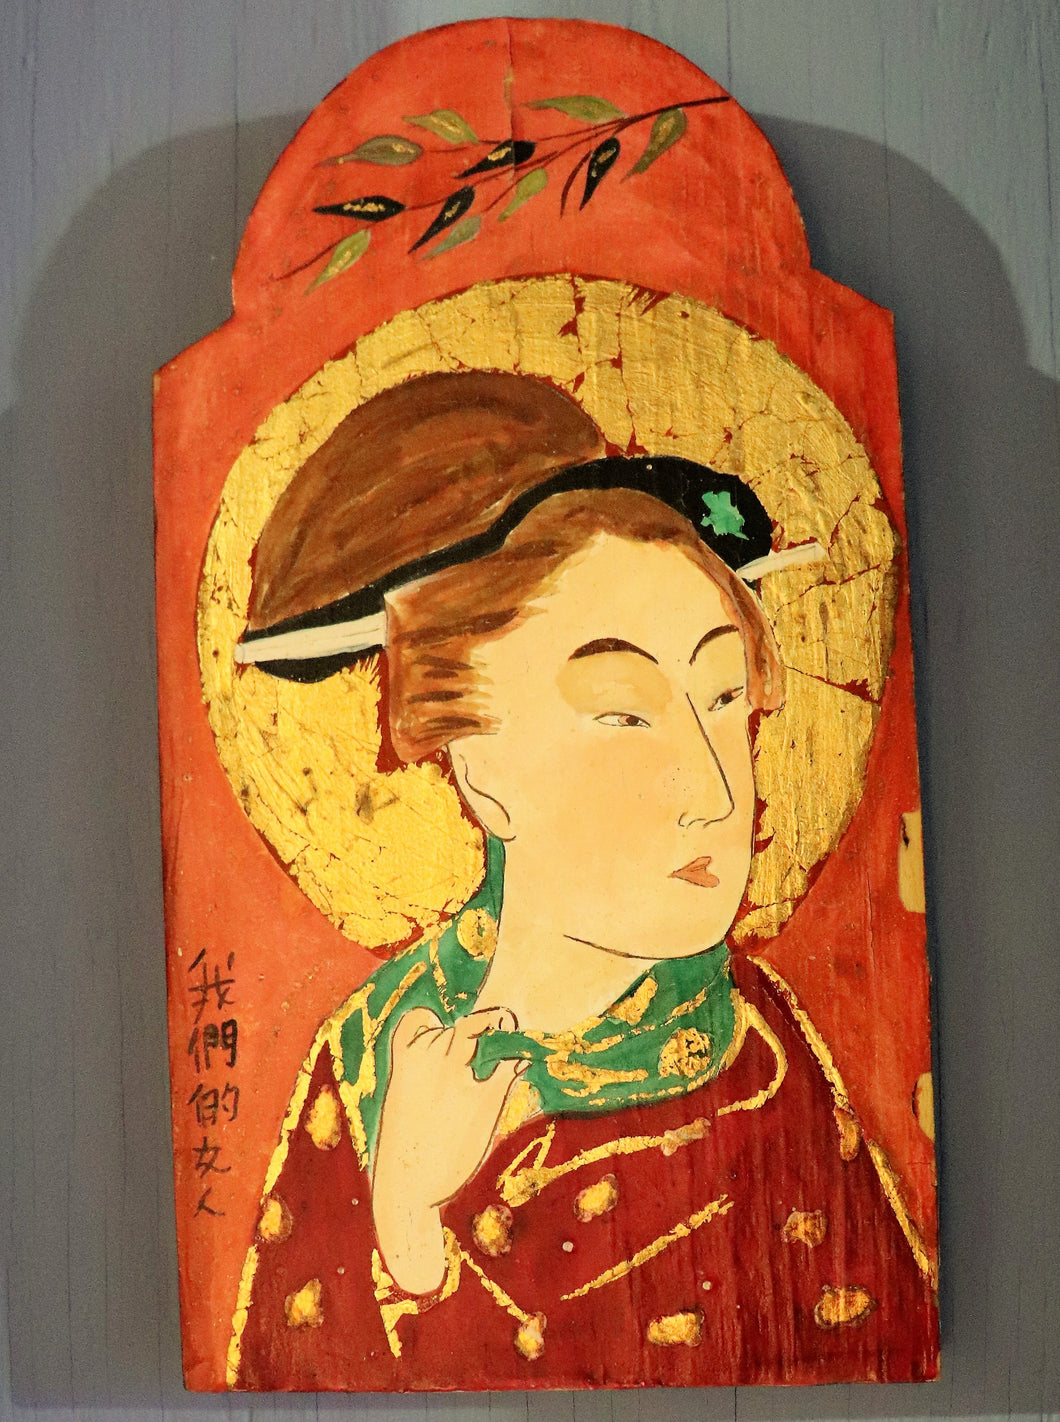 A vertically rectangular wooden plank with a rounded top has a gorgeous geisha glancing over her shoulder to the right. Her head is surrounded by a background of gold while the majority of the background is a warm orange tone.